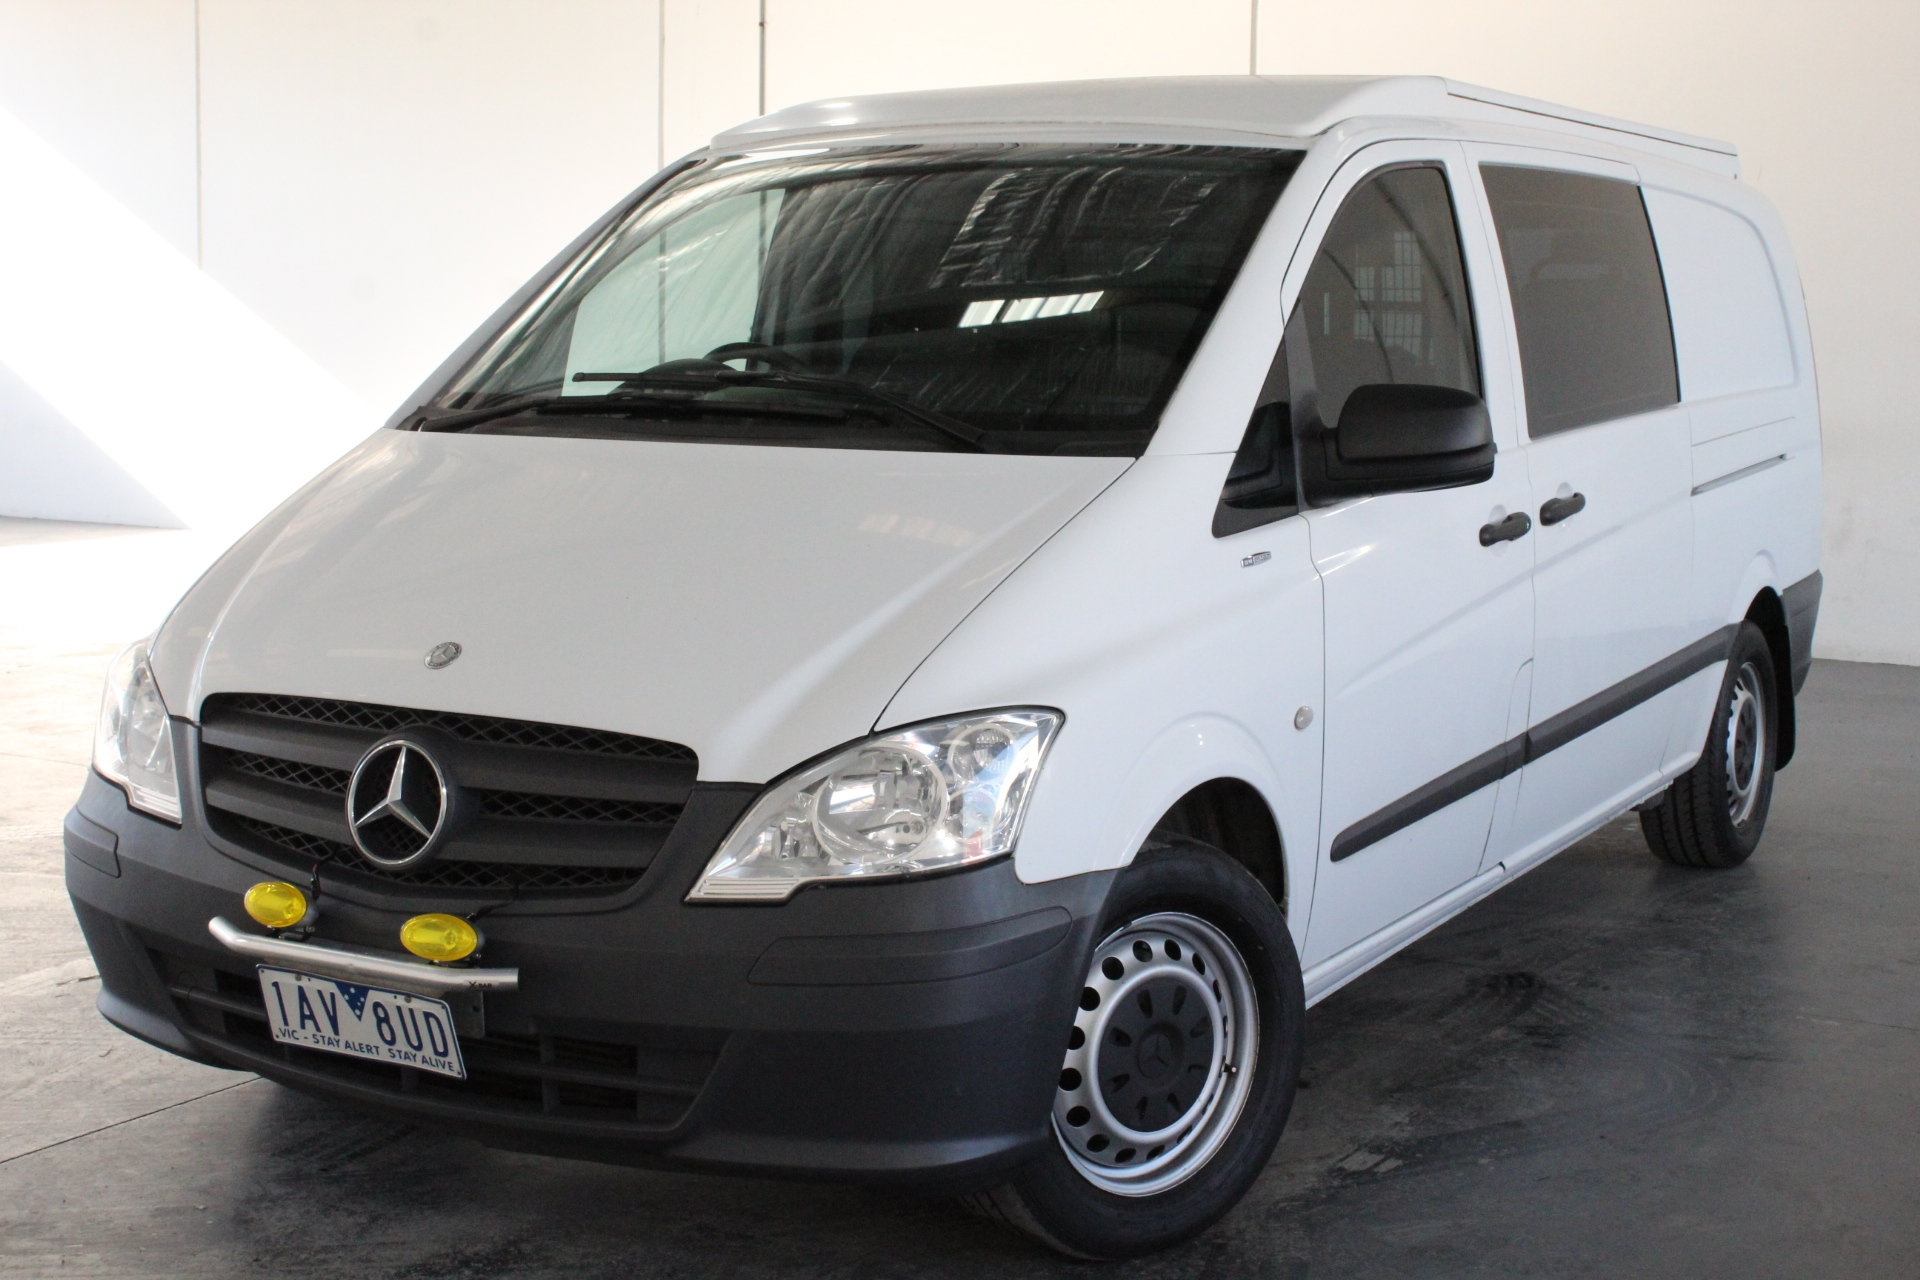 2013 Mercedes Benz Vito 113 CDI LWB Turbo Diesel Manual Van